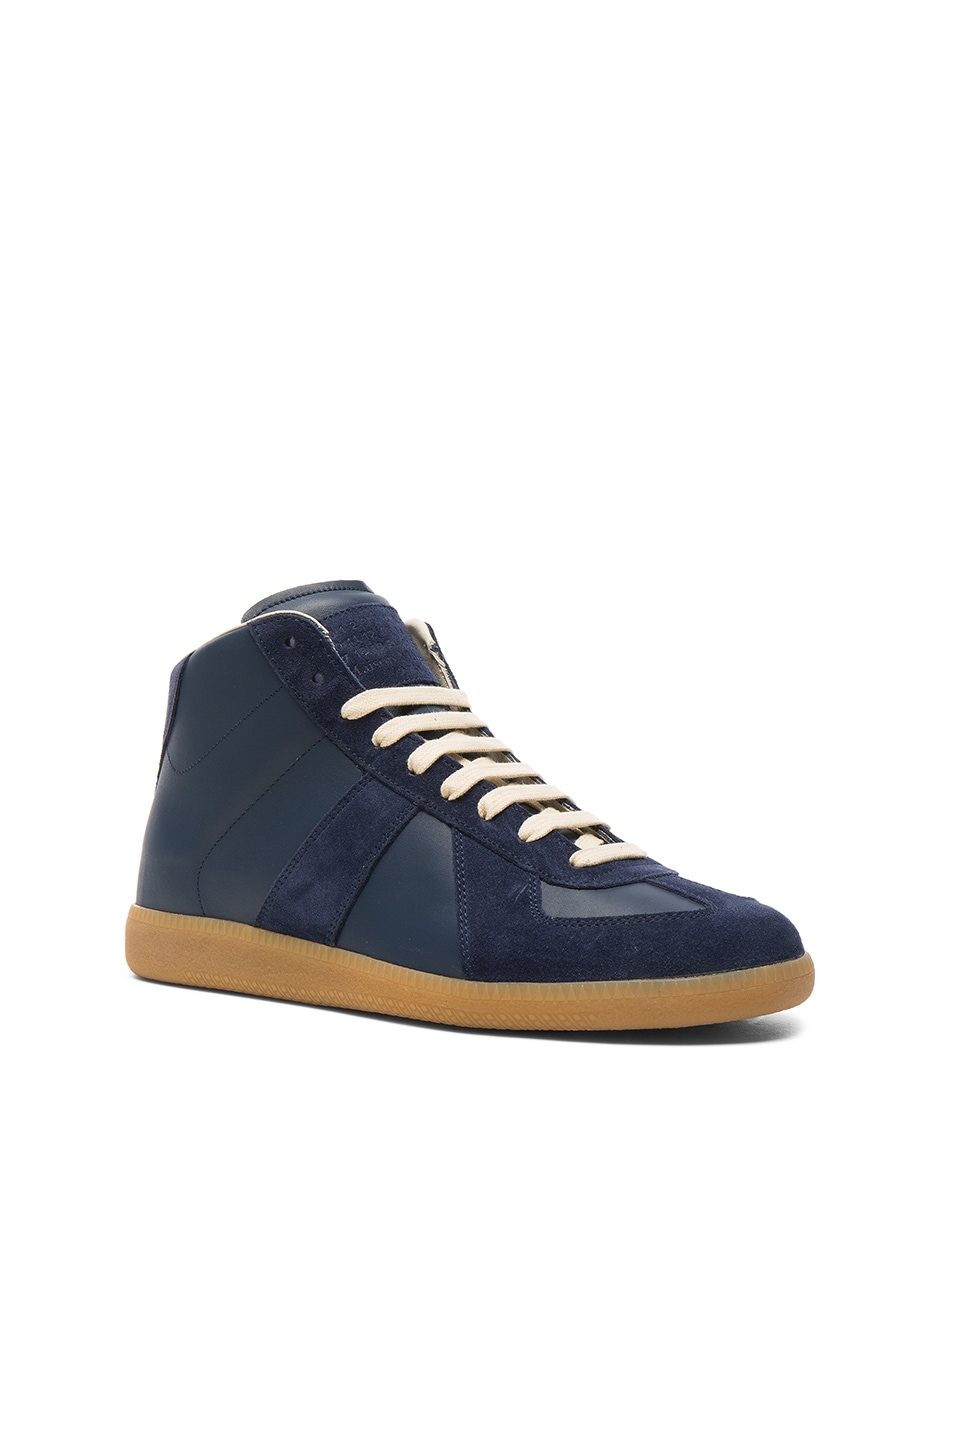 Replica Leather And Suede High-top Sneakers Maison Martin Margiela dgN0j5tu9